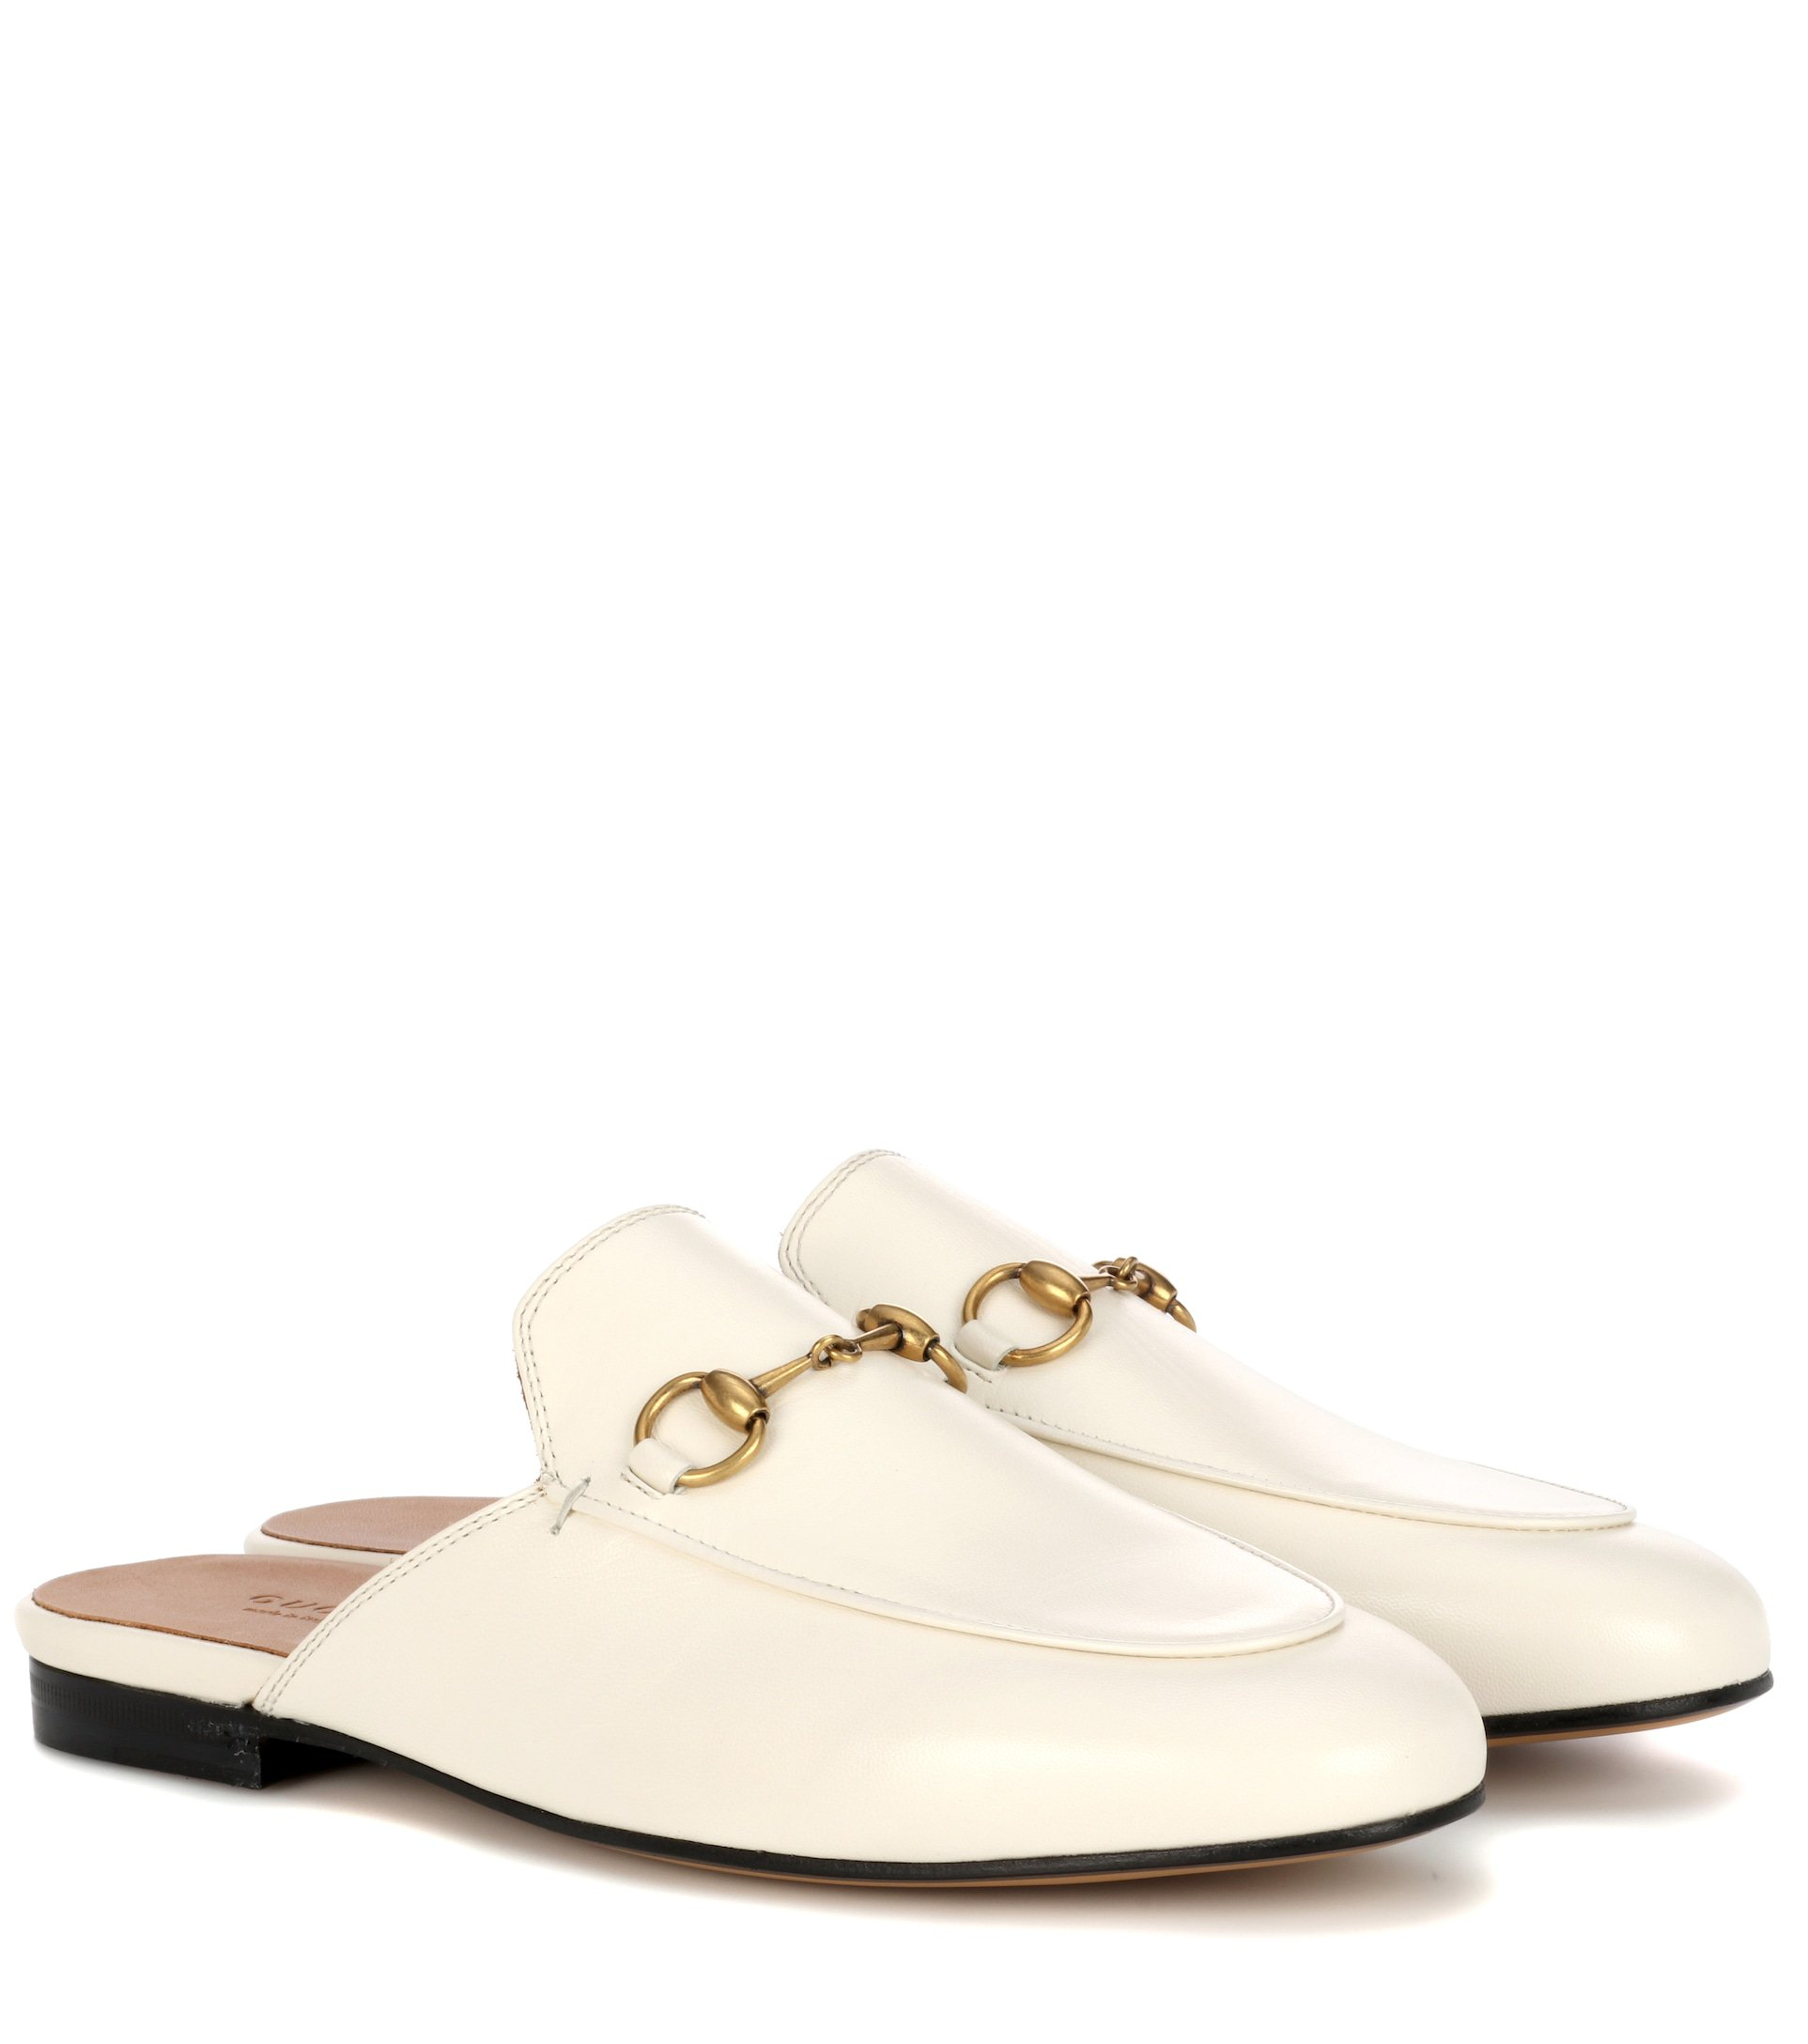 Princetown Leather Slippers - Gucci | mytheresa